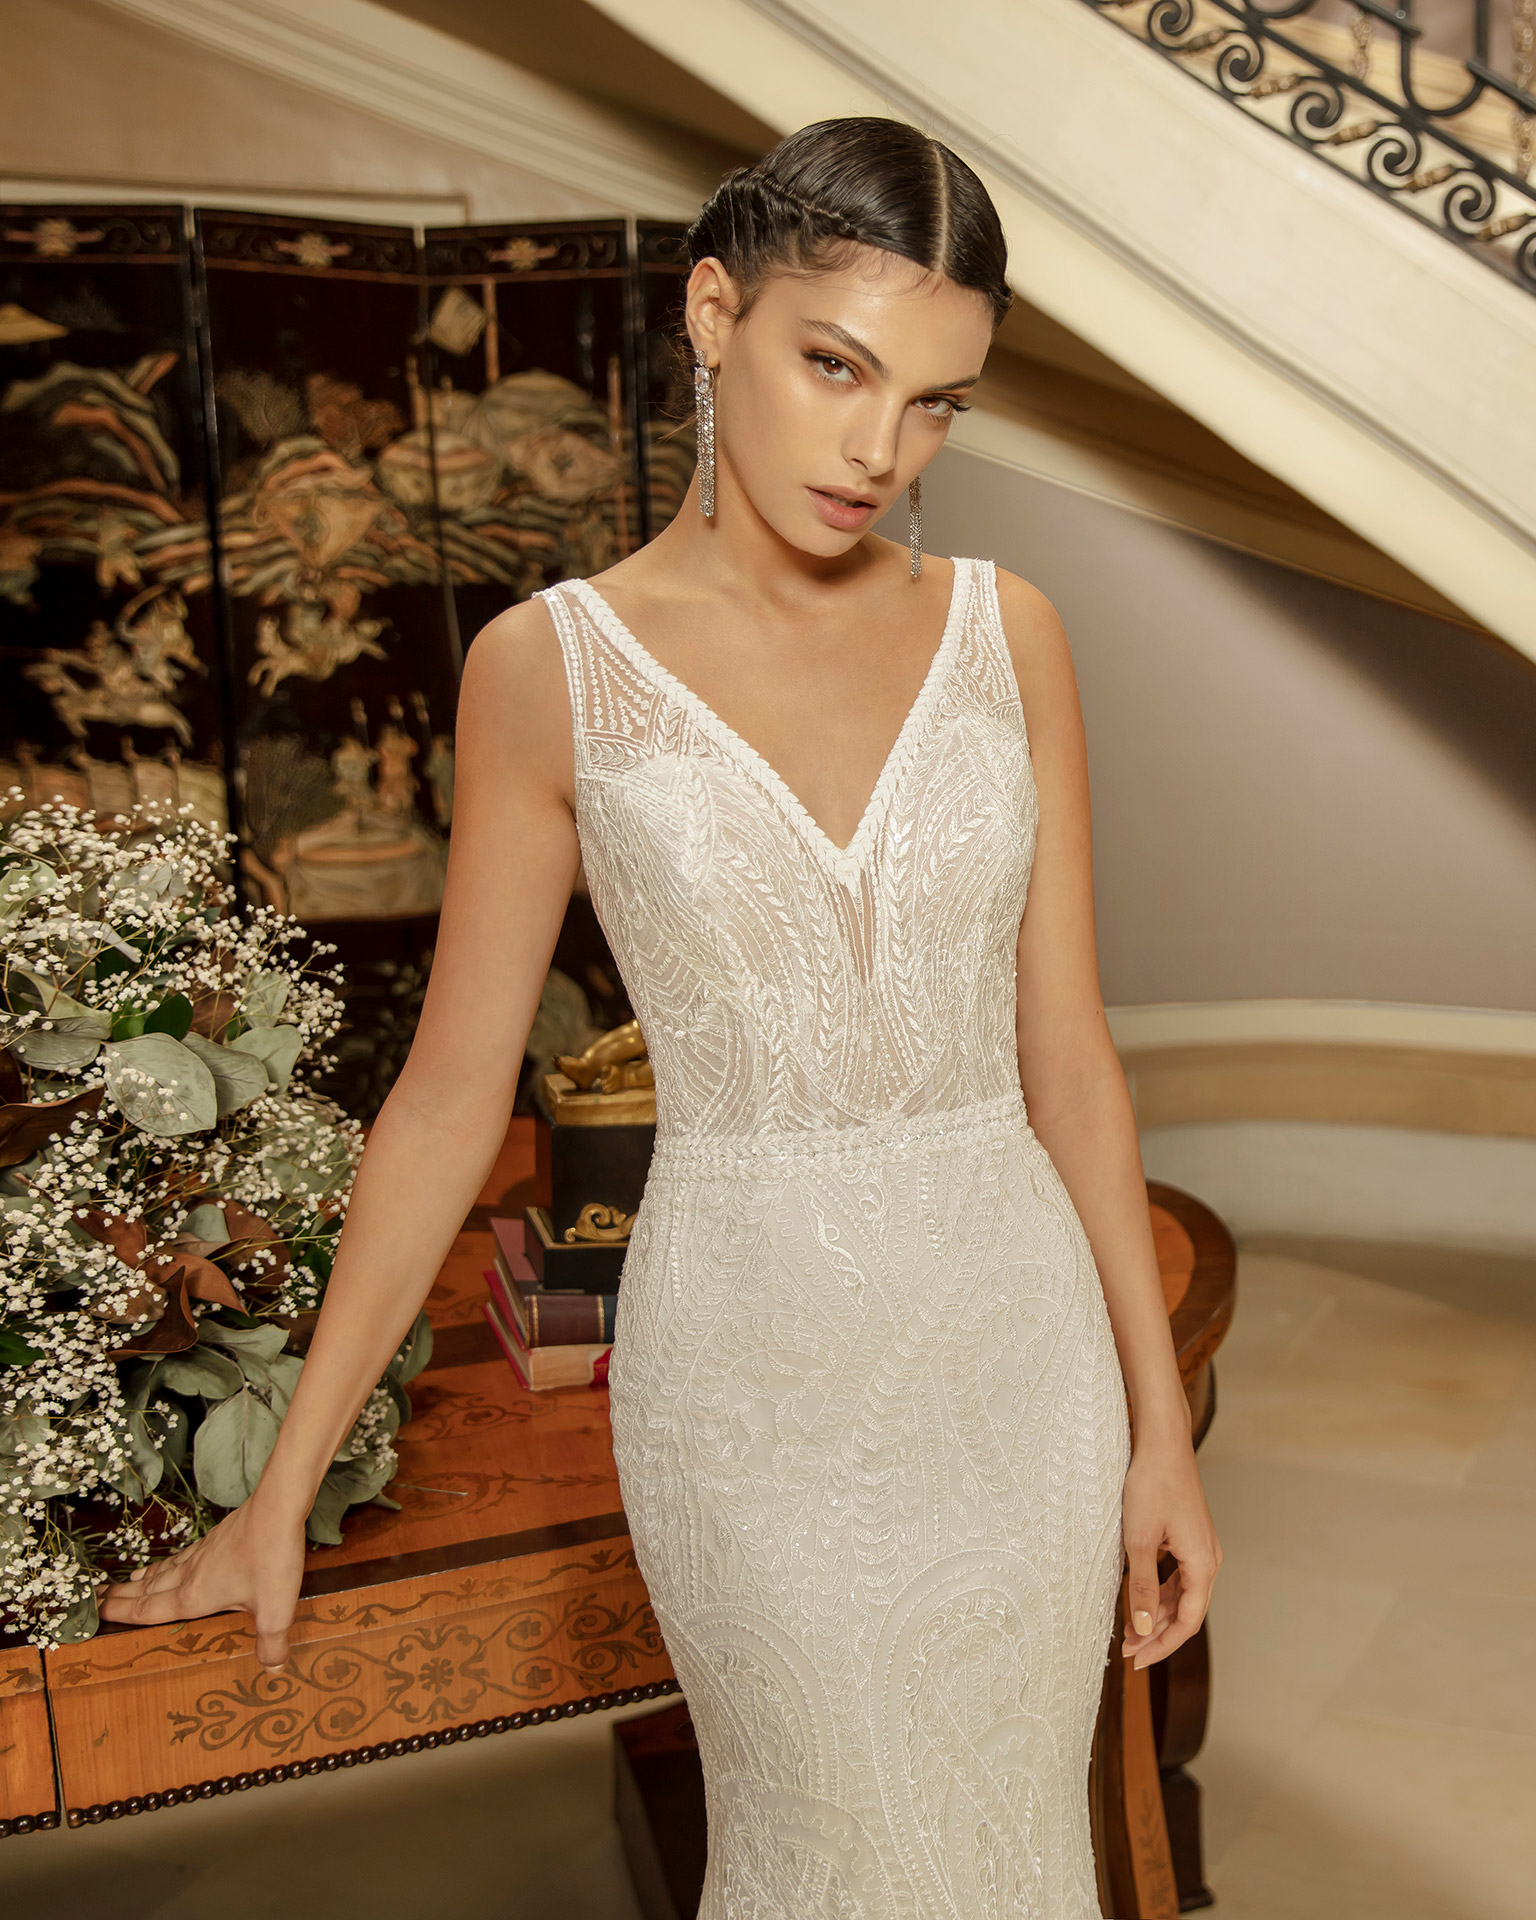 Mermaid-style beaded lace wedding dress with V-neckline and low back. 2020 ALMANOVIA Collection.